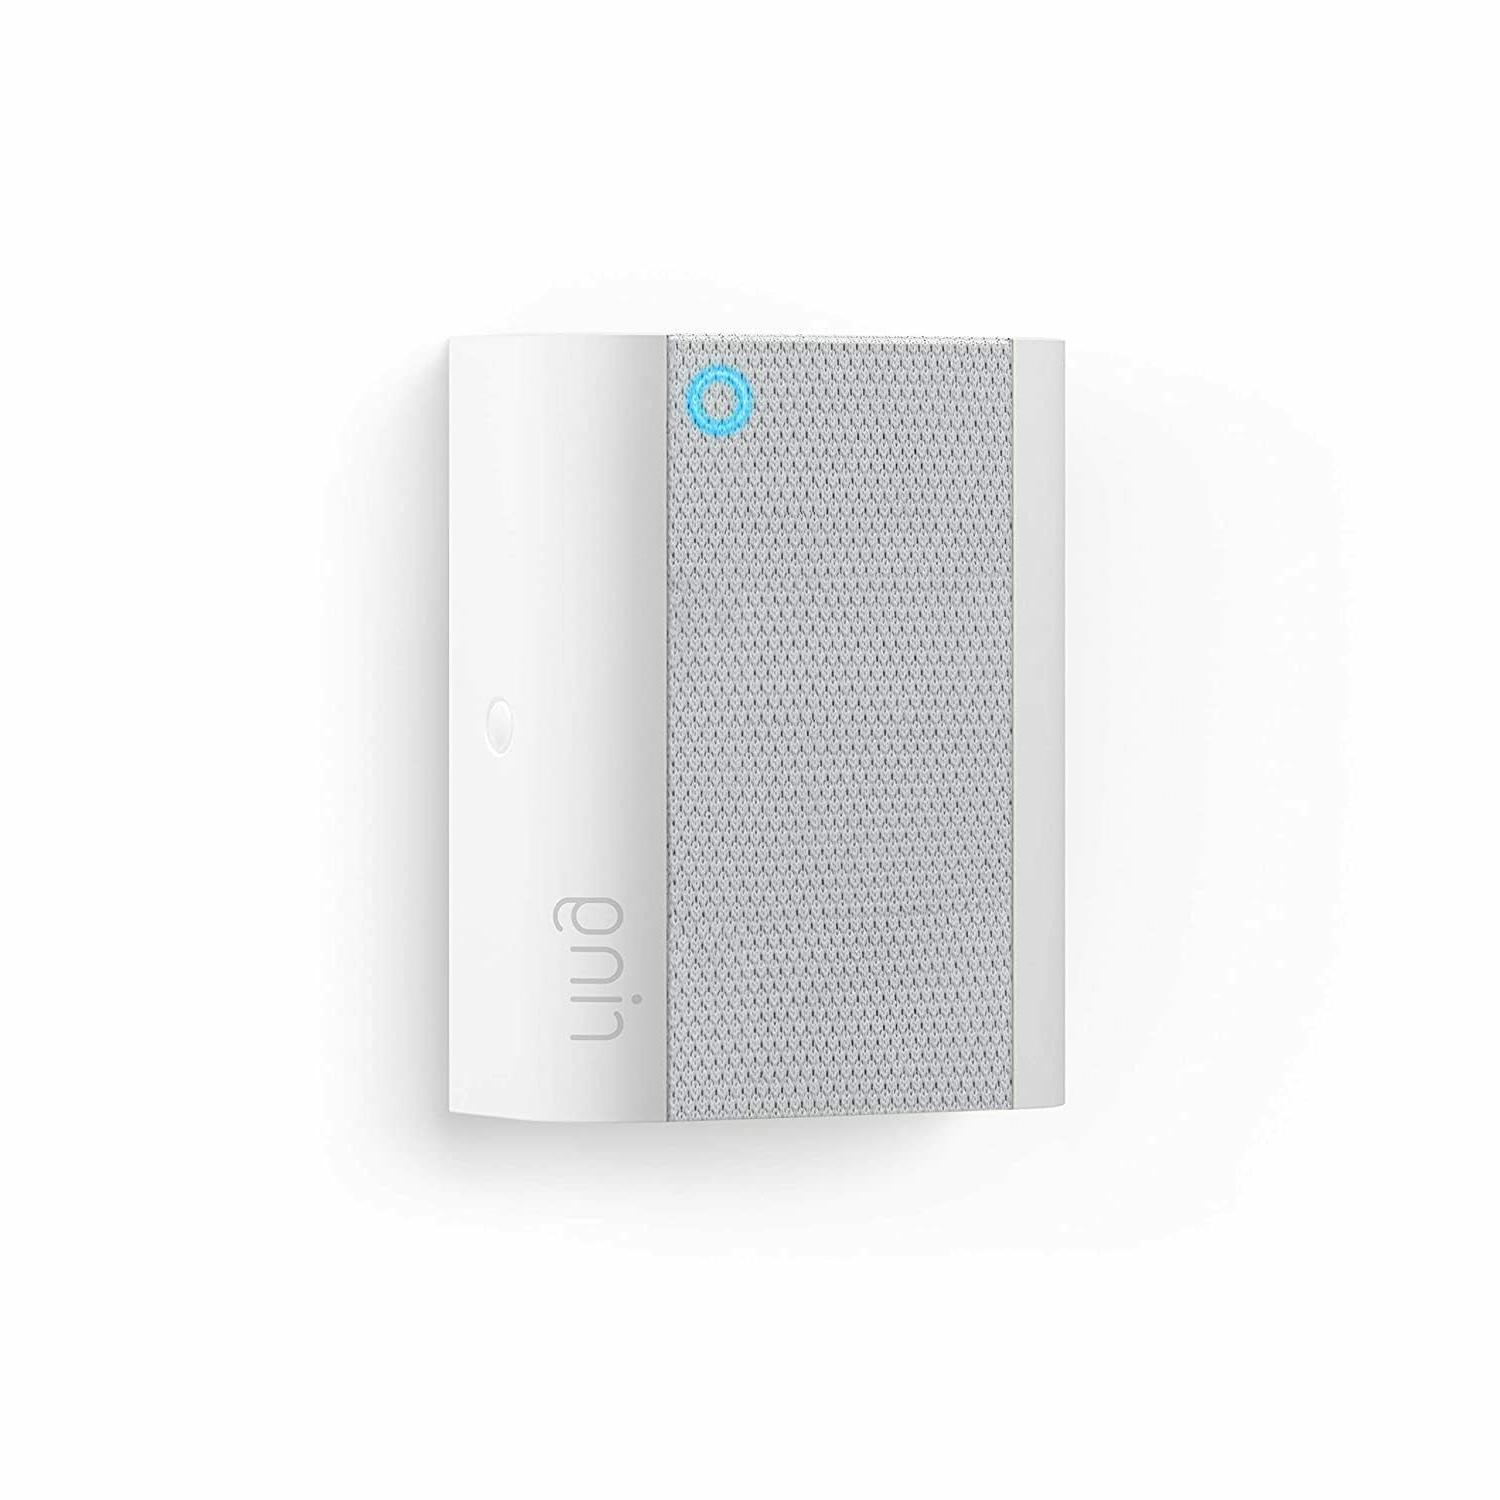 All New Chime Connects to your Compatible Ring Doorbells and